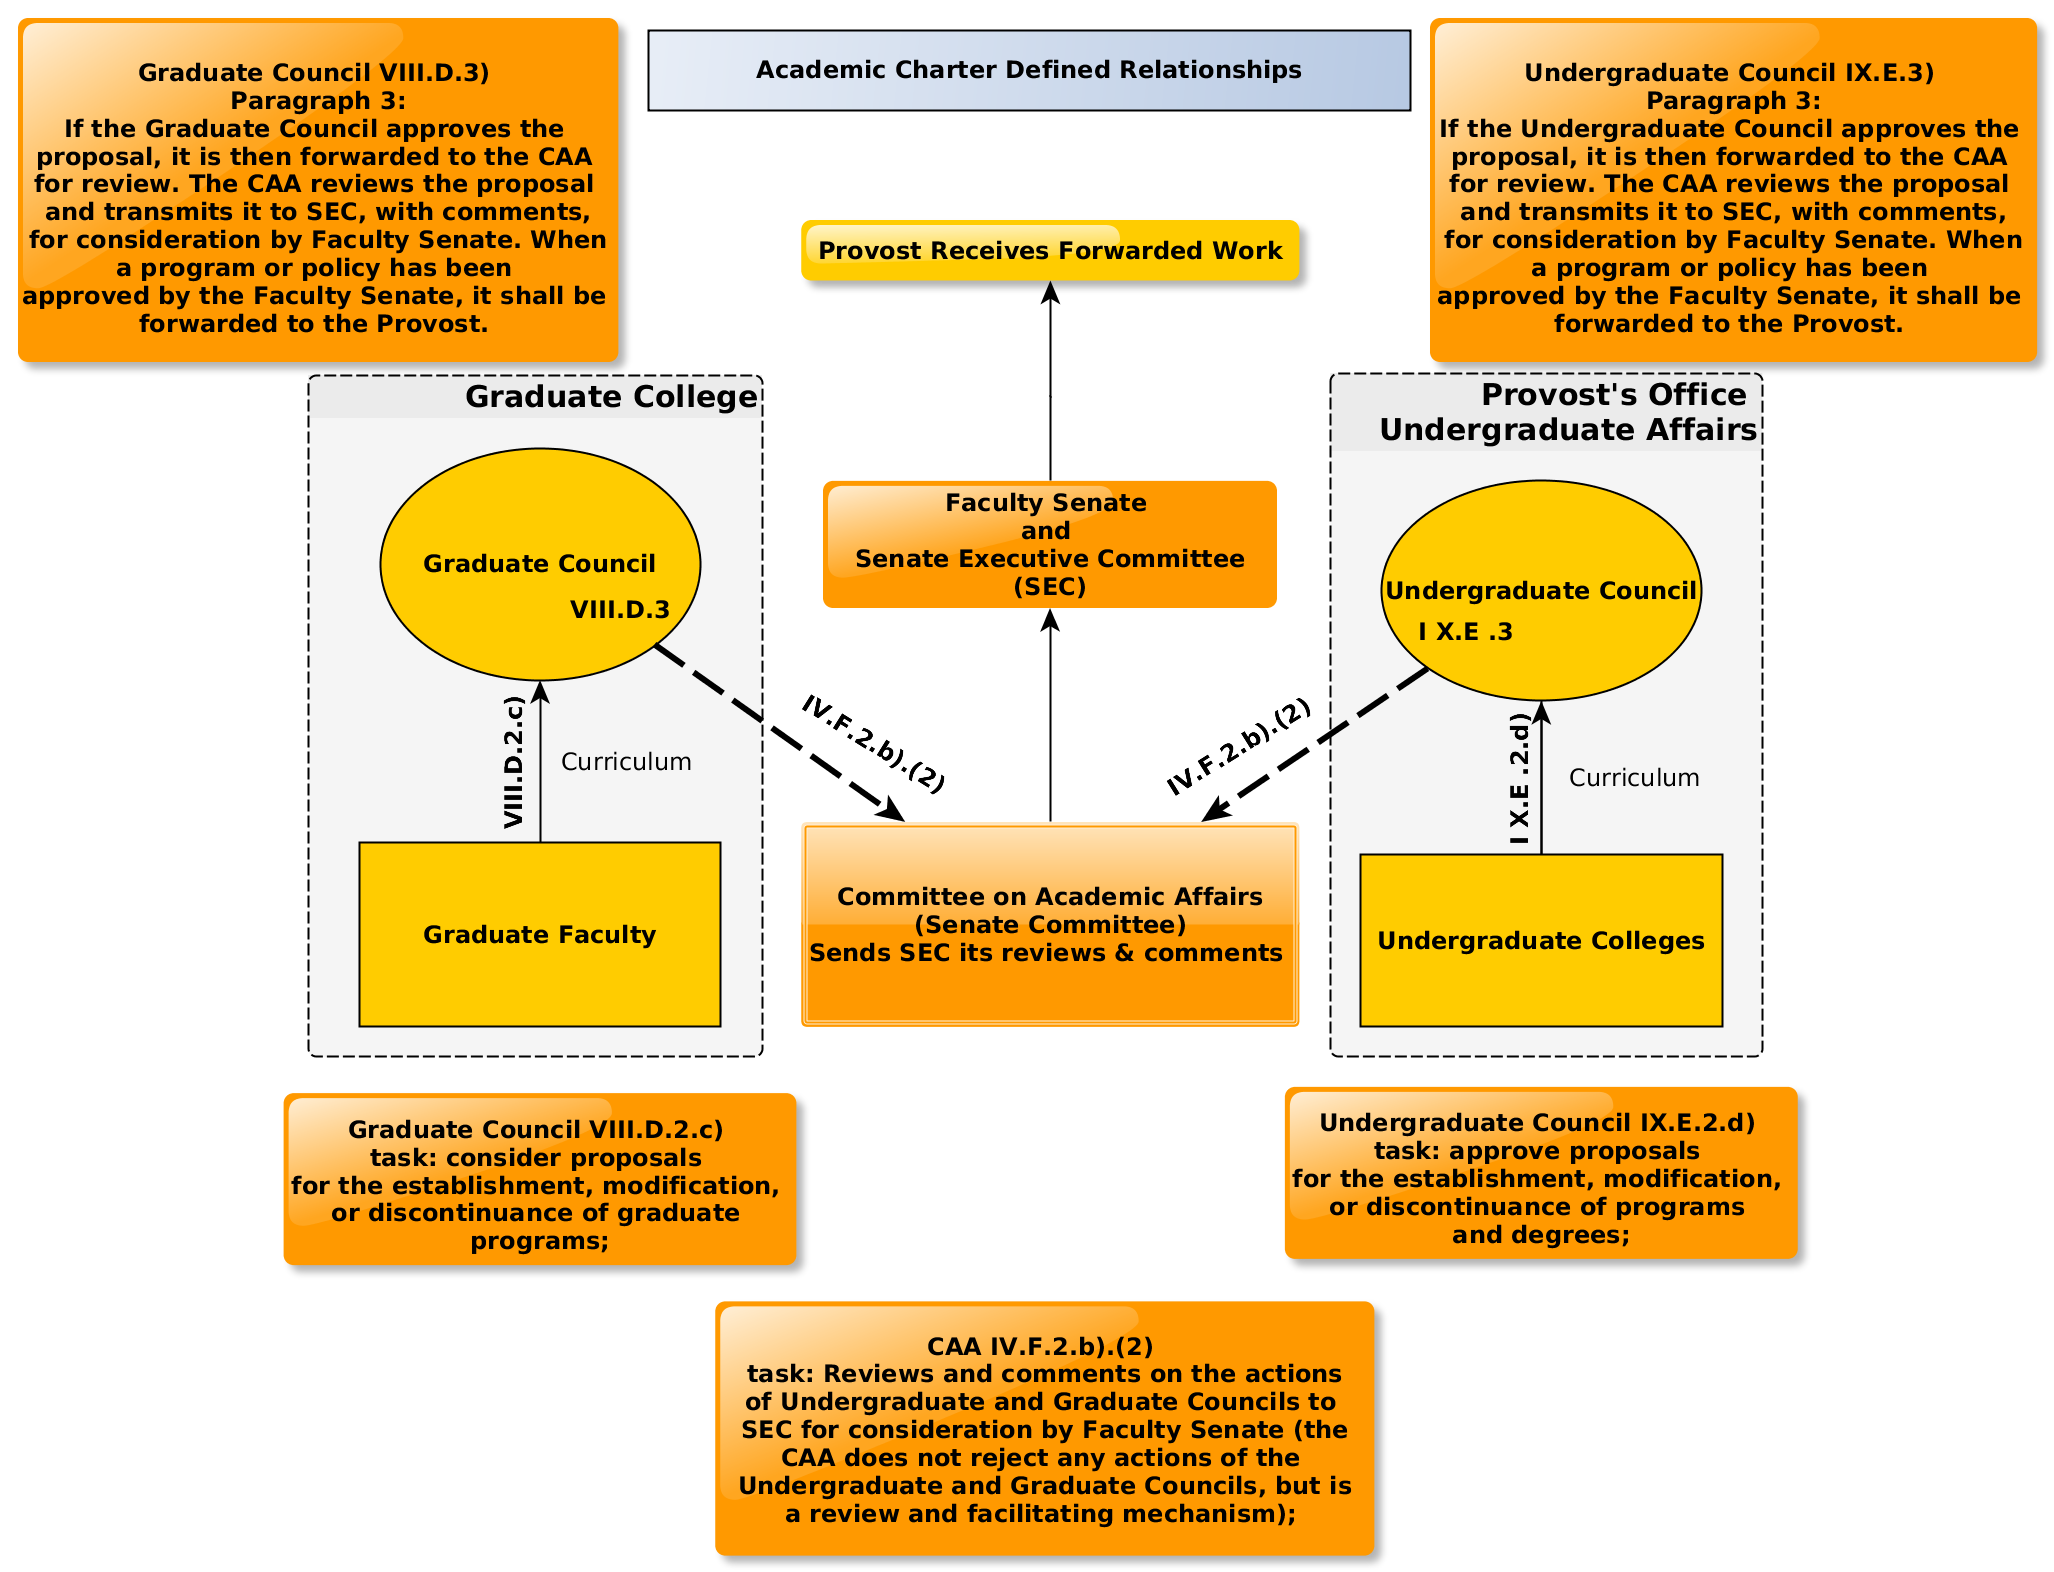 an analysis of the topic of the proposal and procedure Proposal a ompany's transformation into a larger organization and acceptance of projects that possess significant technical complexity necessitates improving its proposal processes by establishing formalized.